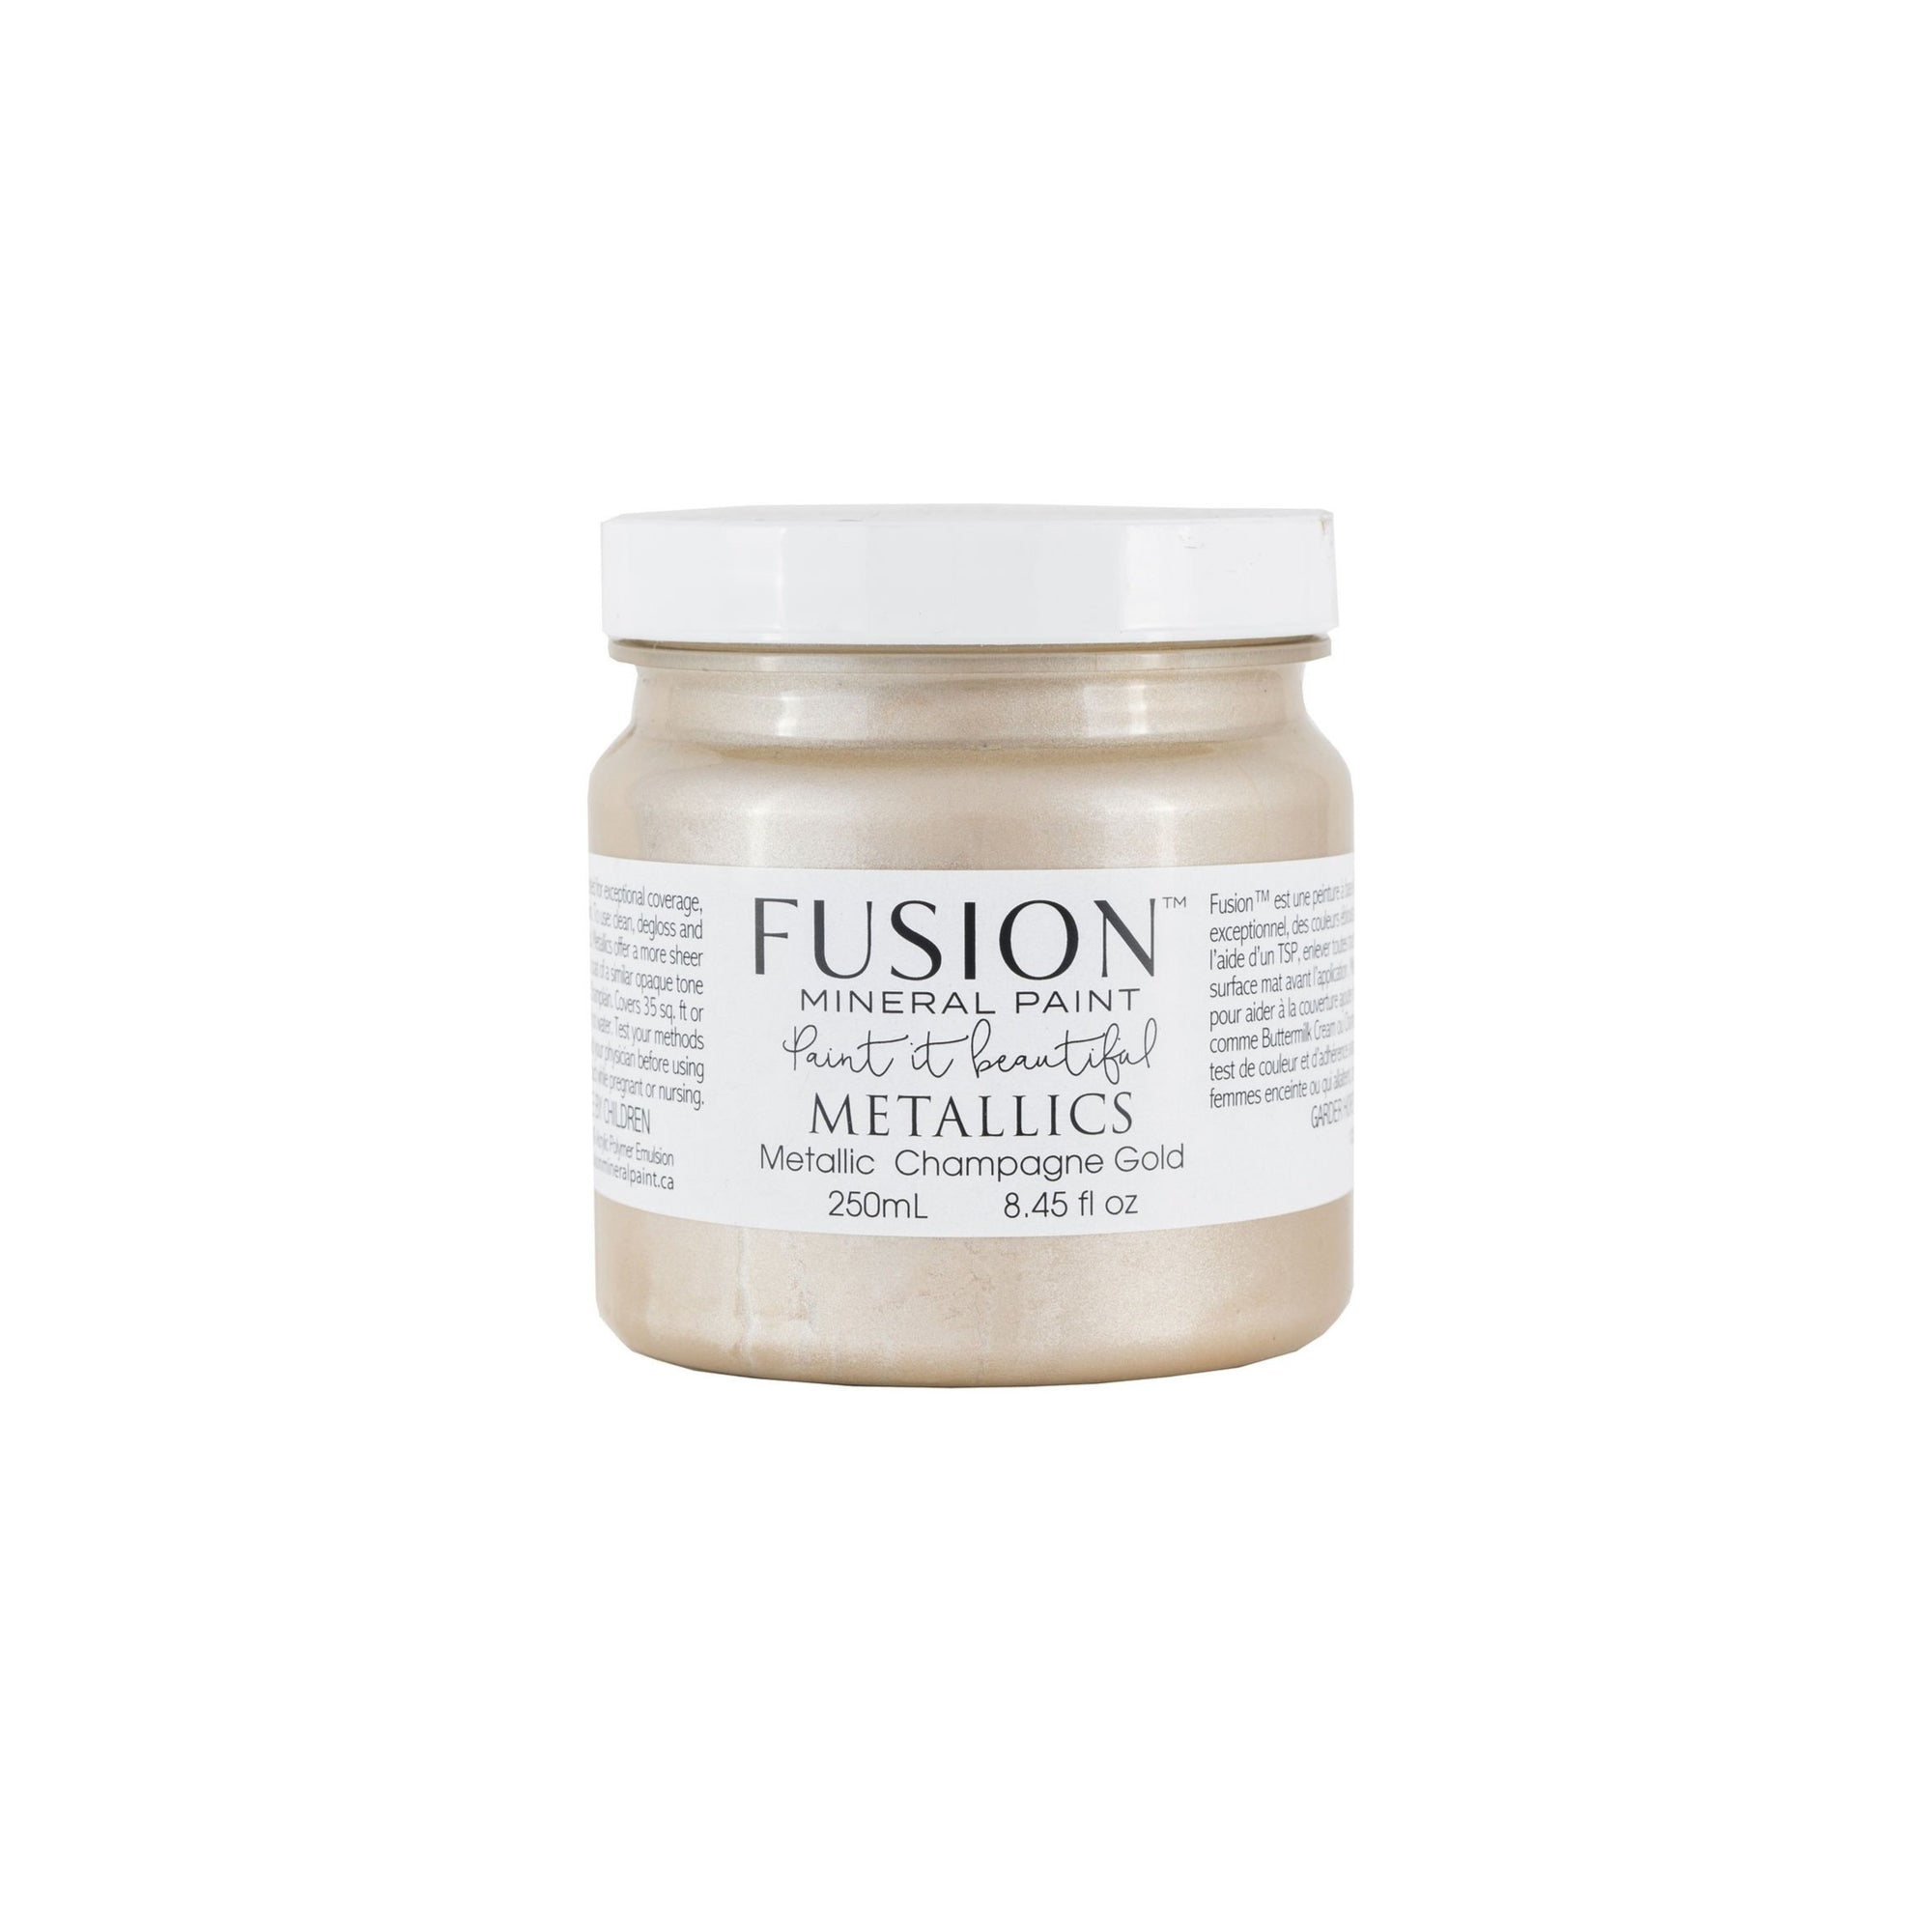 fusion mineral paint farmhouse inspired metallic champagne gold